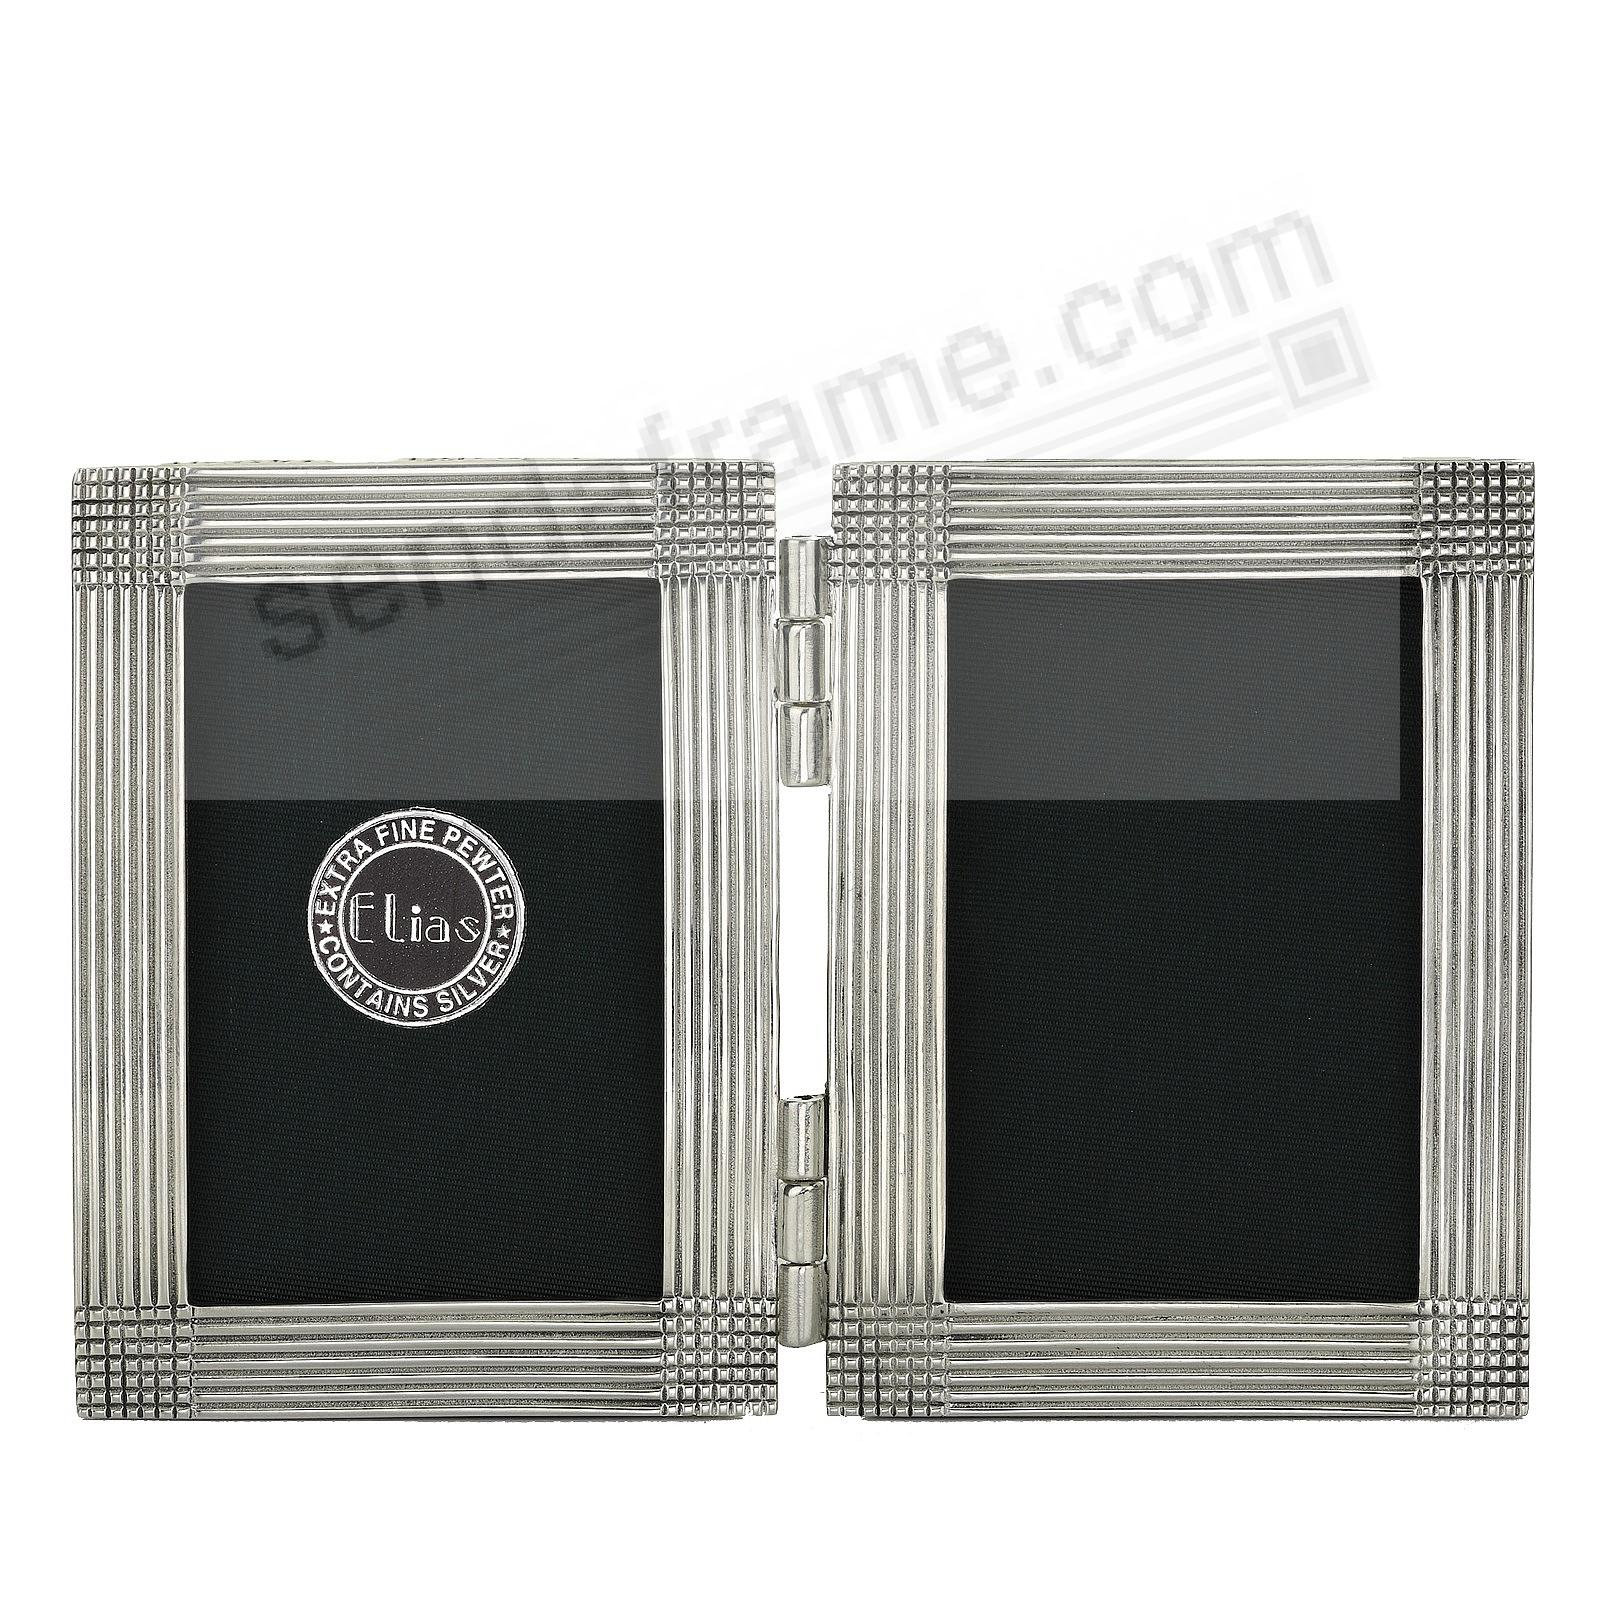 MATRIX DOUBLE luxe silvered fine pewter 2x3 by Elias Artmetal®